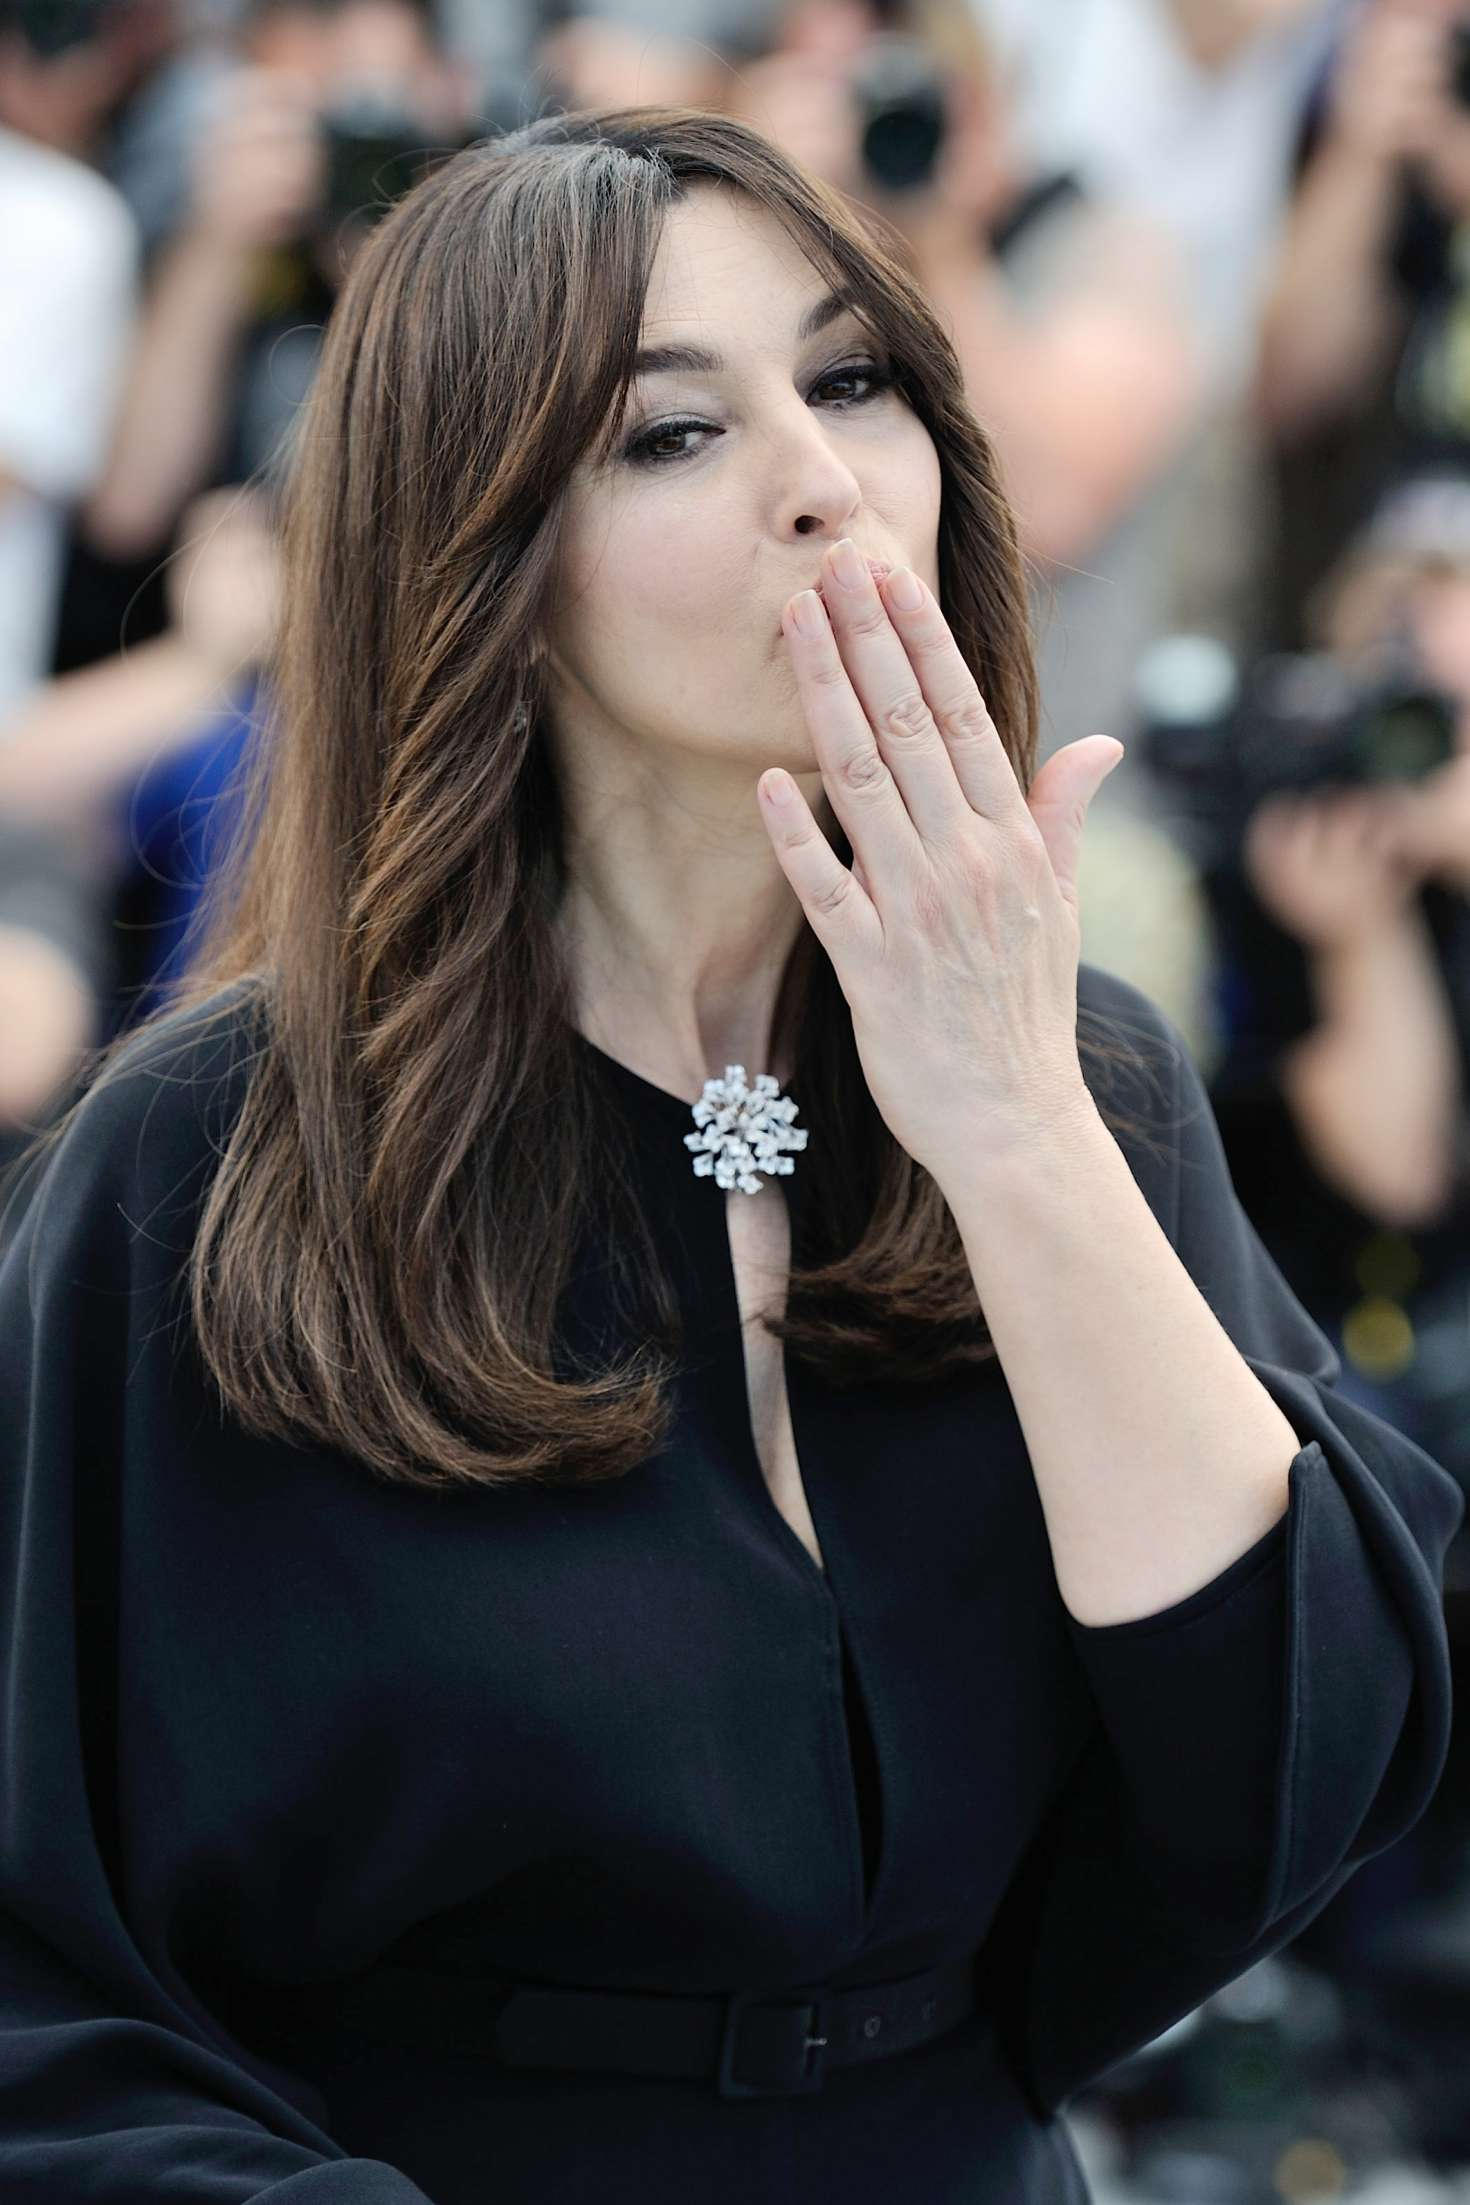 Monica Bellucci photo gallery - 1678 high quality pics of ... Monica Bellucci